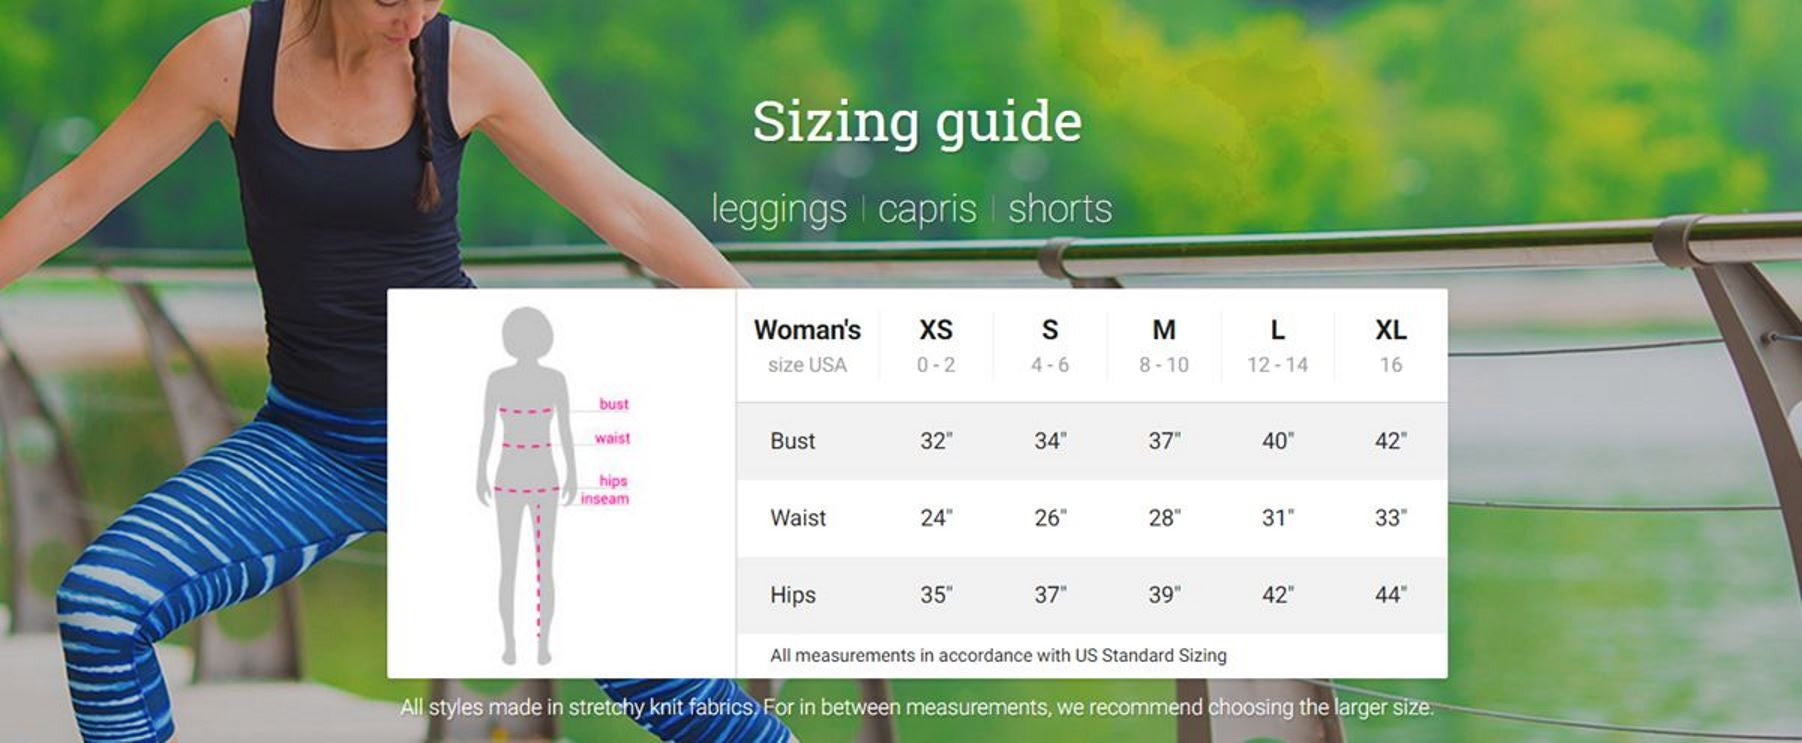 Leggings & Capris Sizing Chart